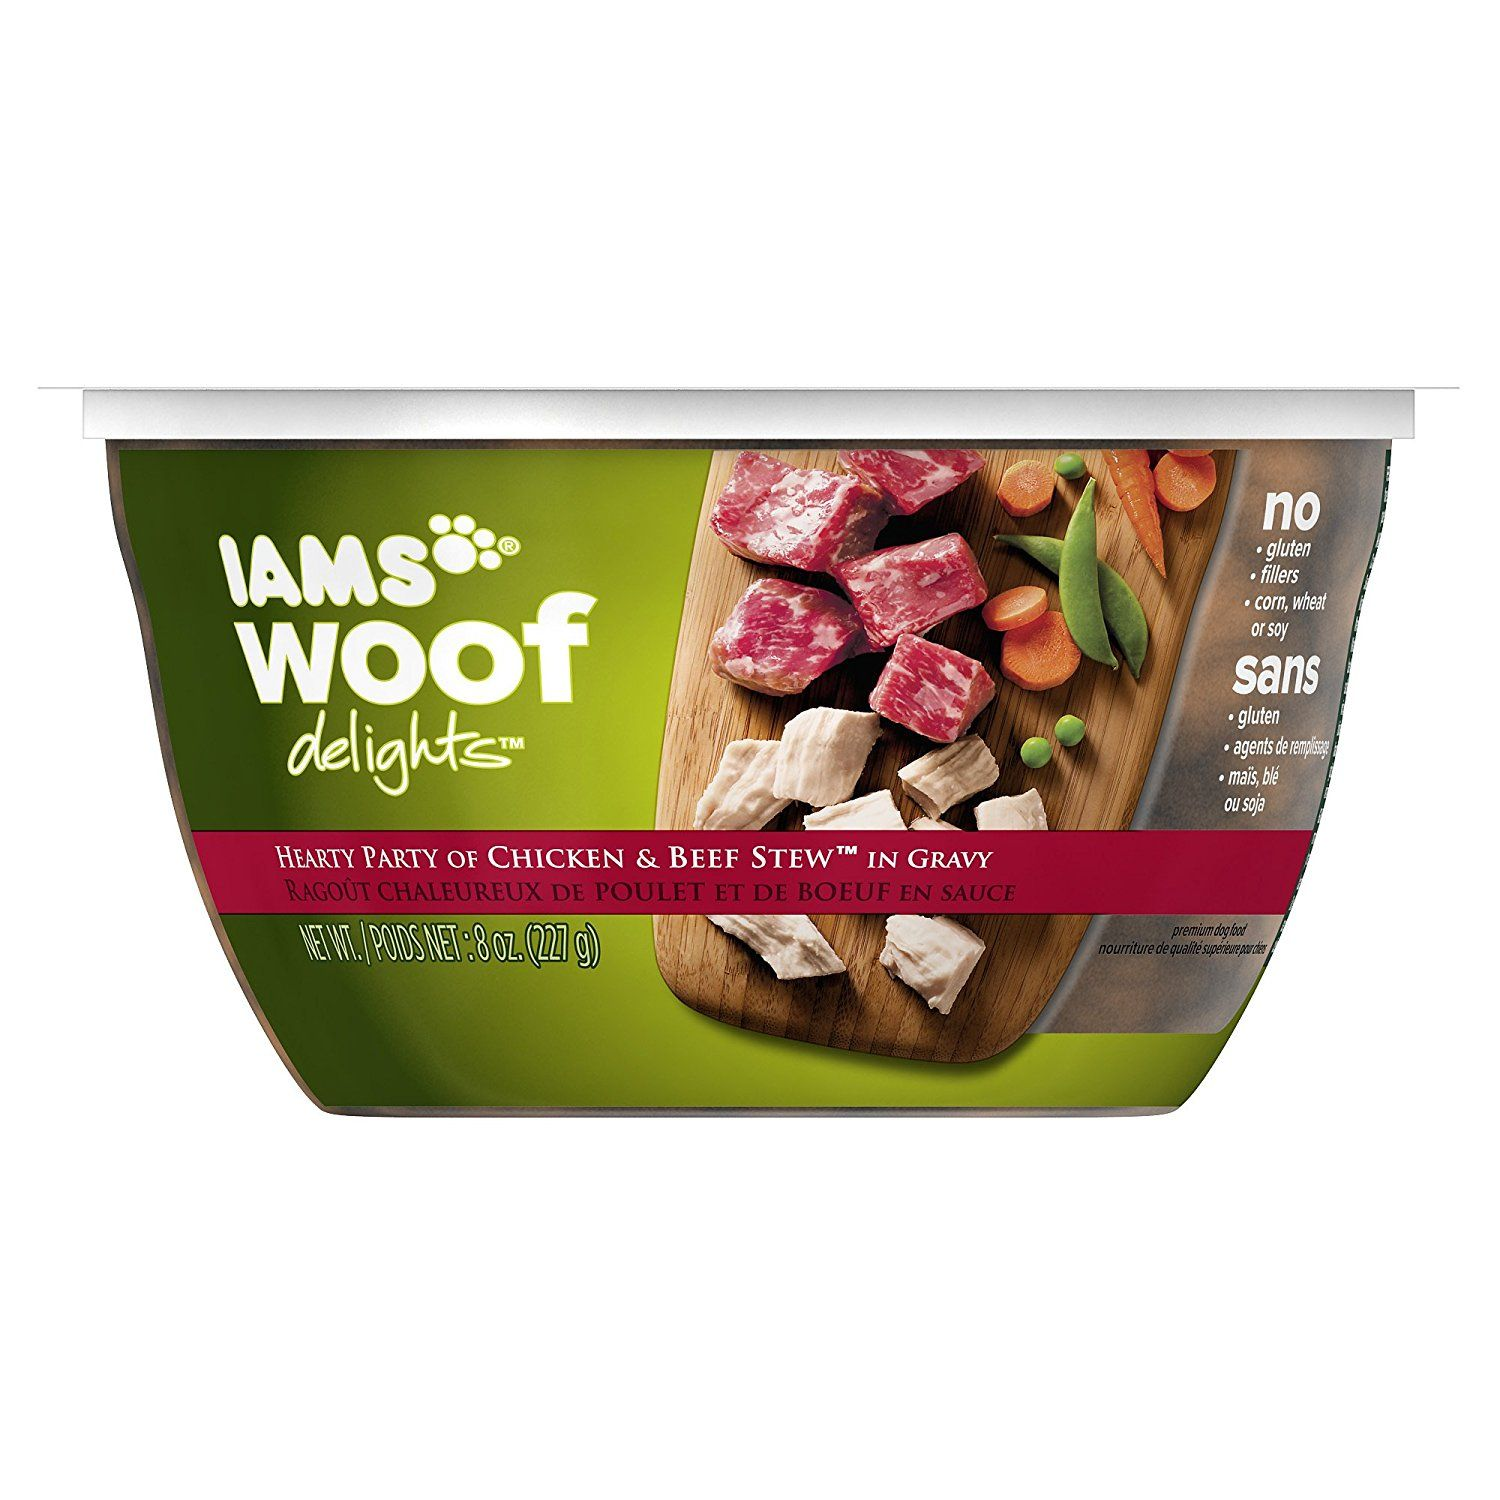 IAMS WOOF DELIGHTS Wet Dog Food >>> Read more reviews of